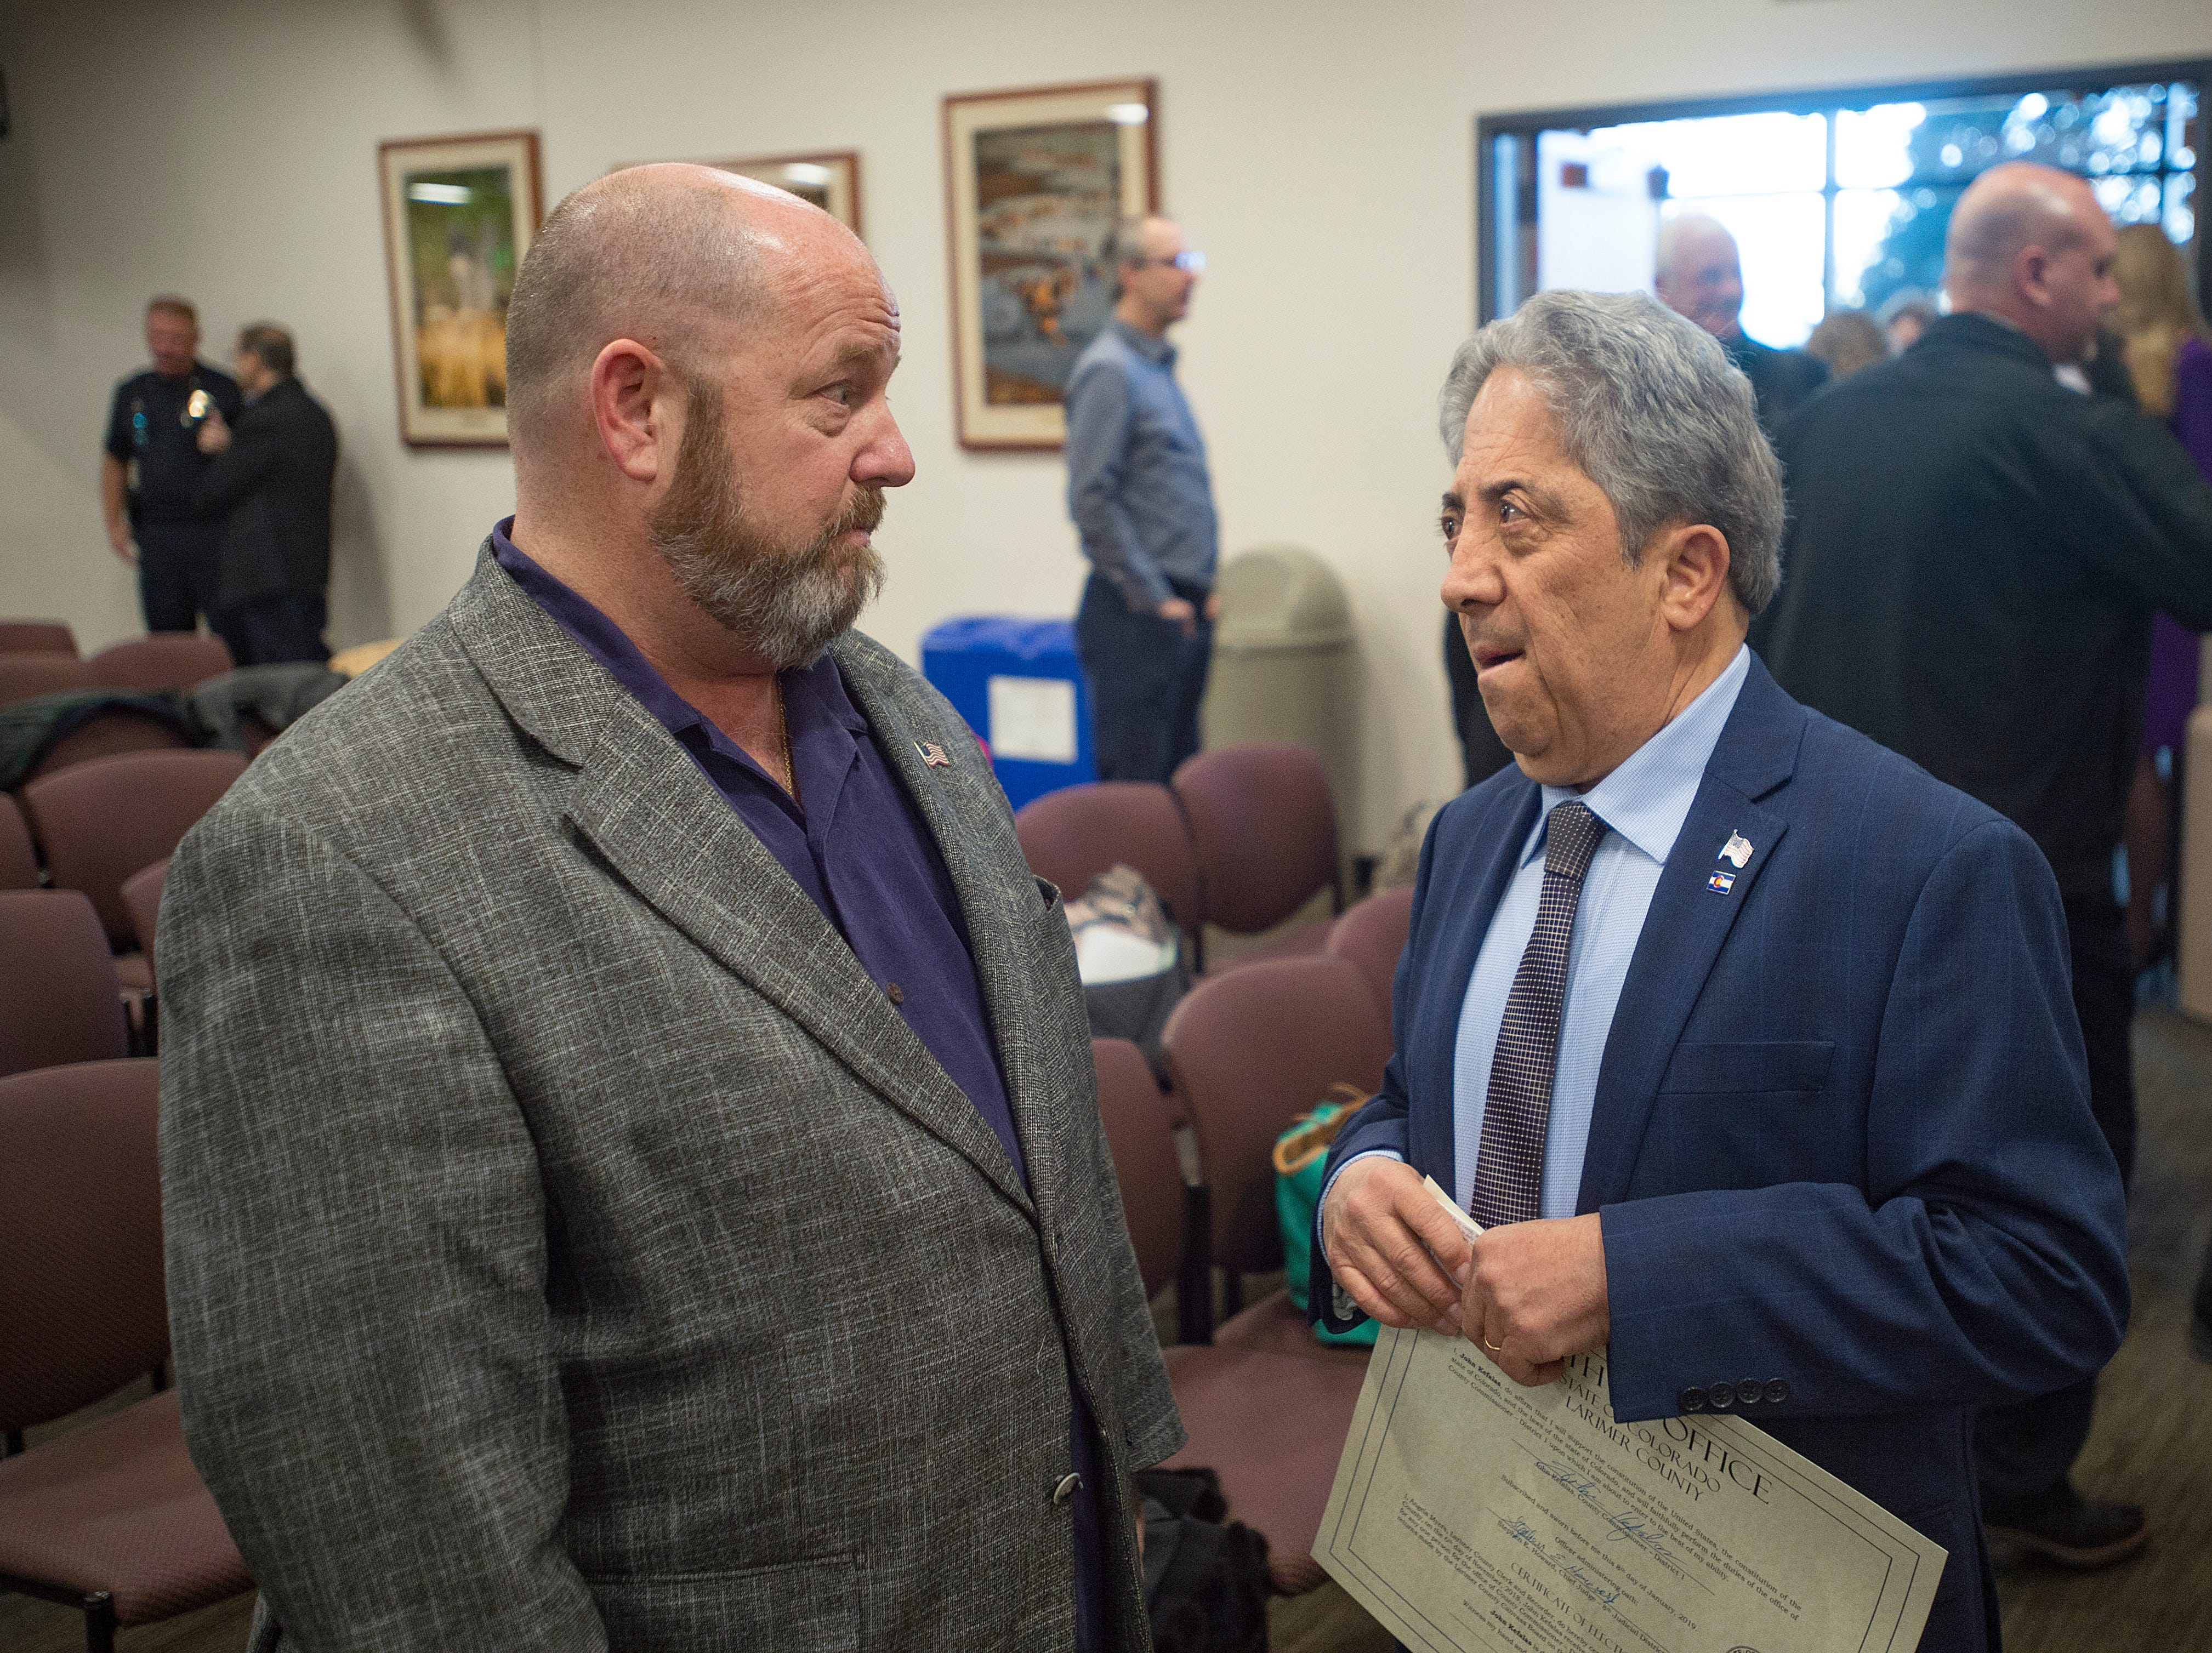 Outgoing commissioner Sean Dougherty talks with John Kefalas after he is sworn in as Larimer County Commissioner at the Larimer County Courthouse on Tuesday, January 8, 2019.